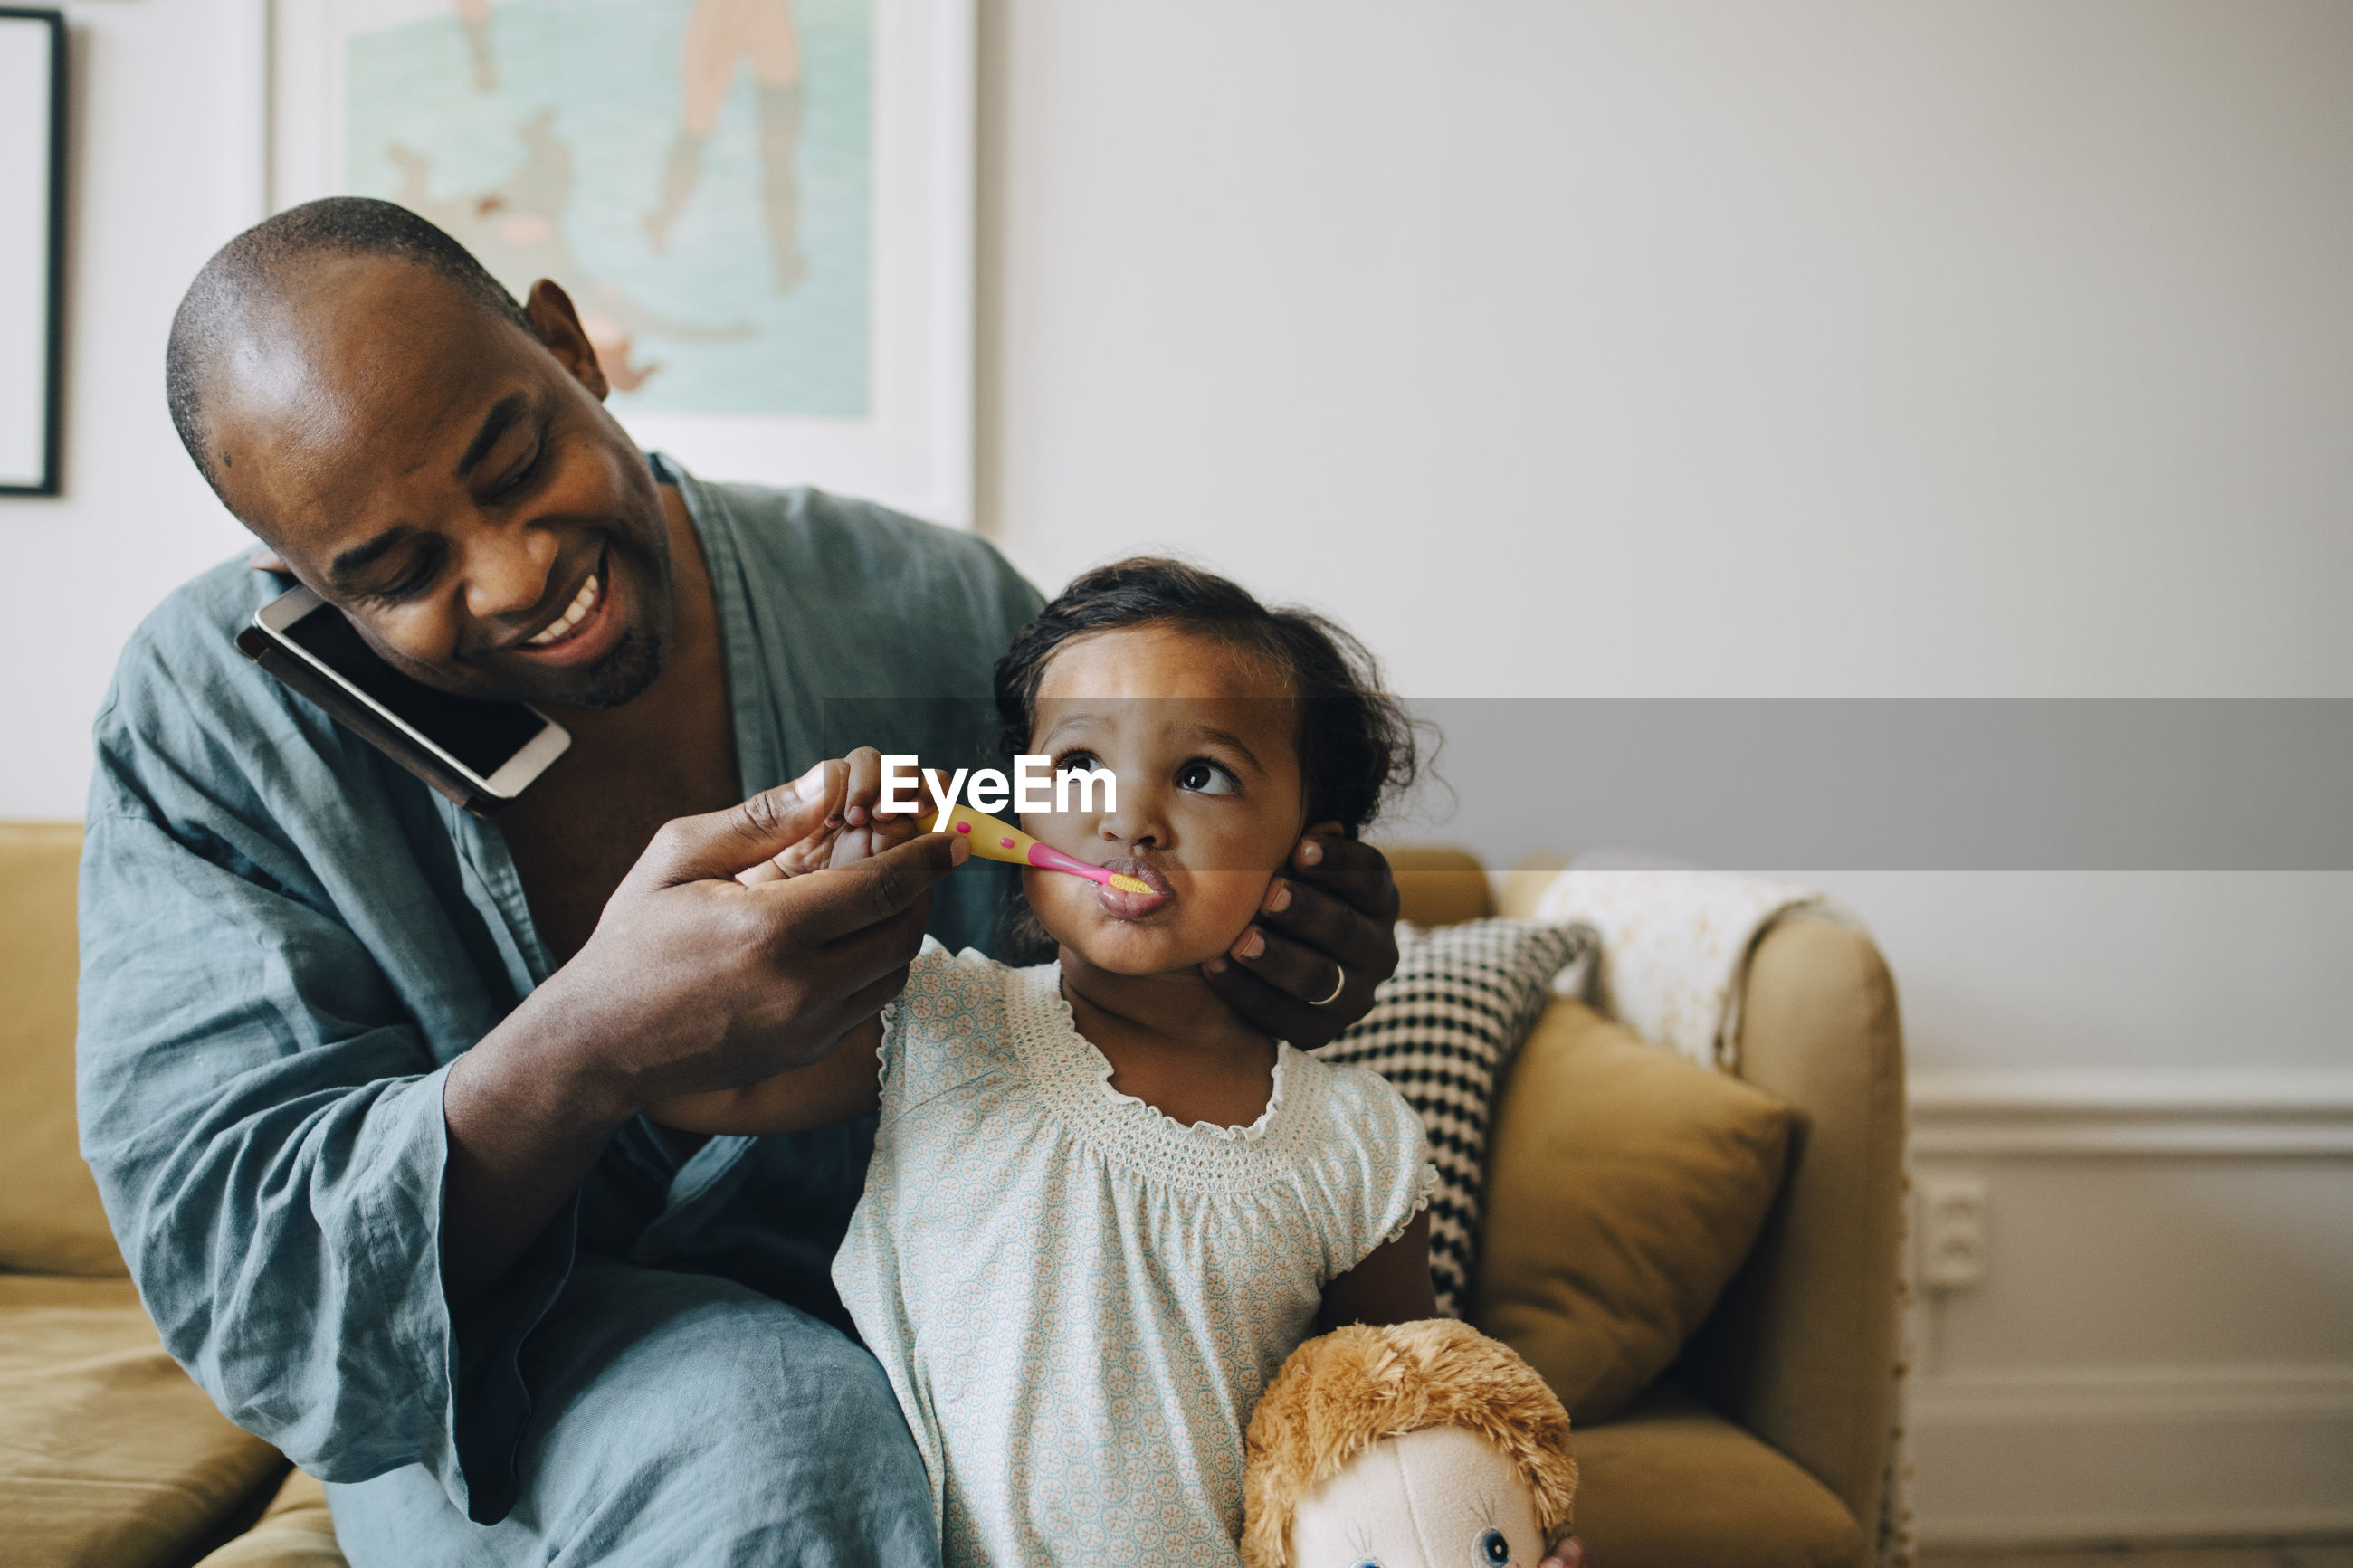 PORTRAIT OF FATHER AND SON SITTING ON SOFA